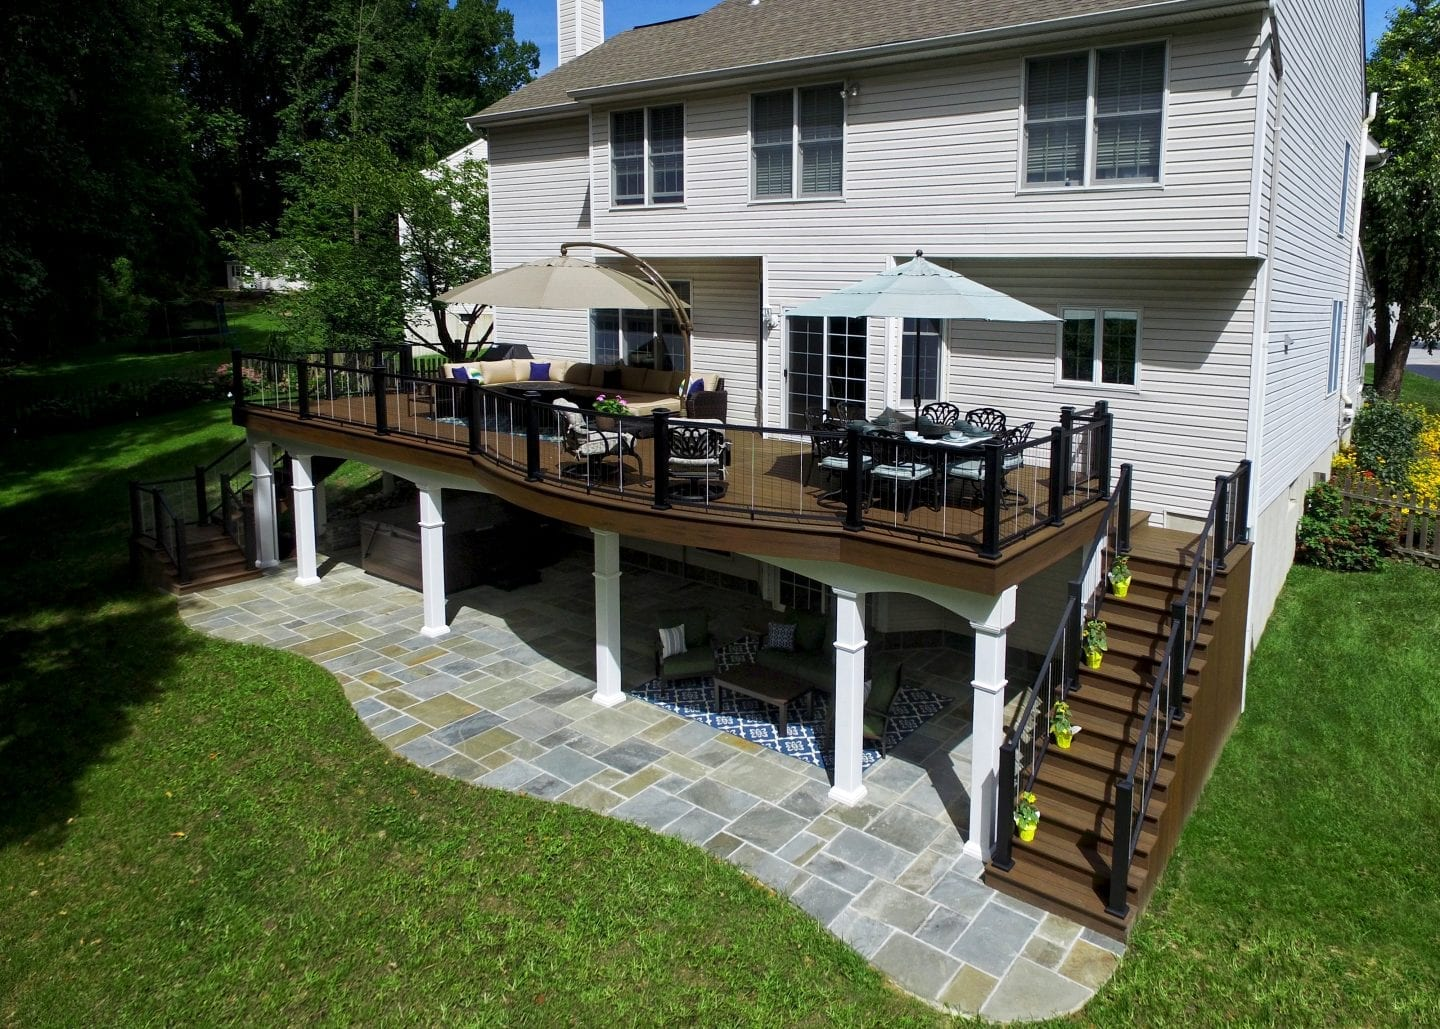 Backyard Patio Builders: Covered Patios | Chester ... on Patio With Deck Ideas id=70779